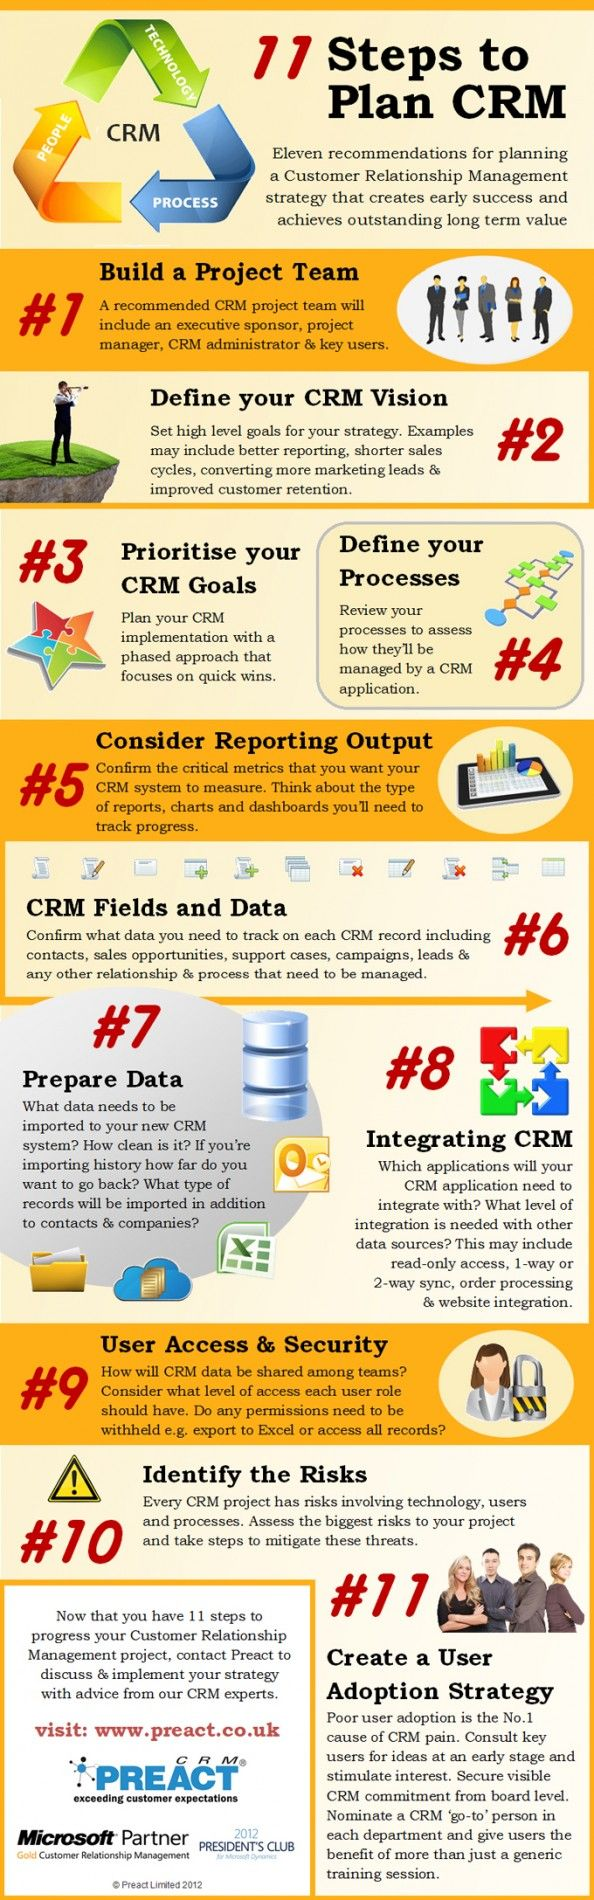 11 steps to CRM plan #infographic